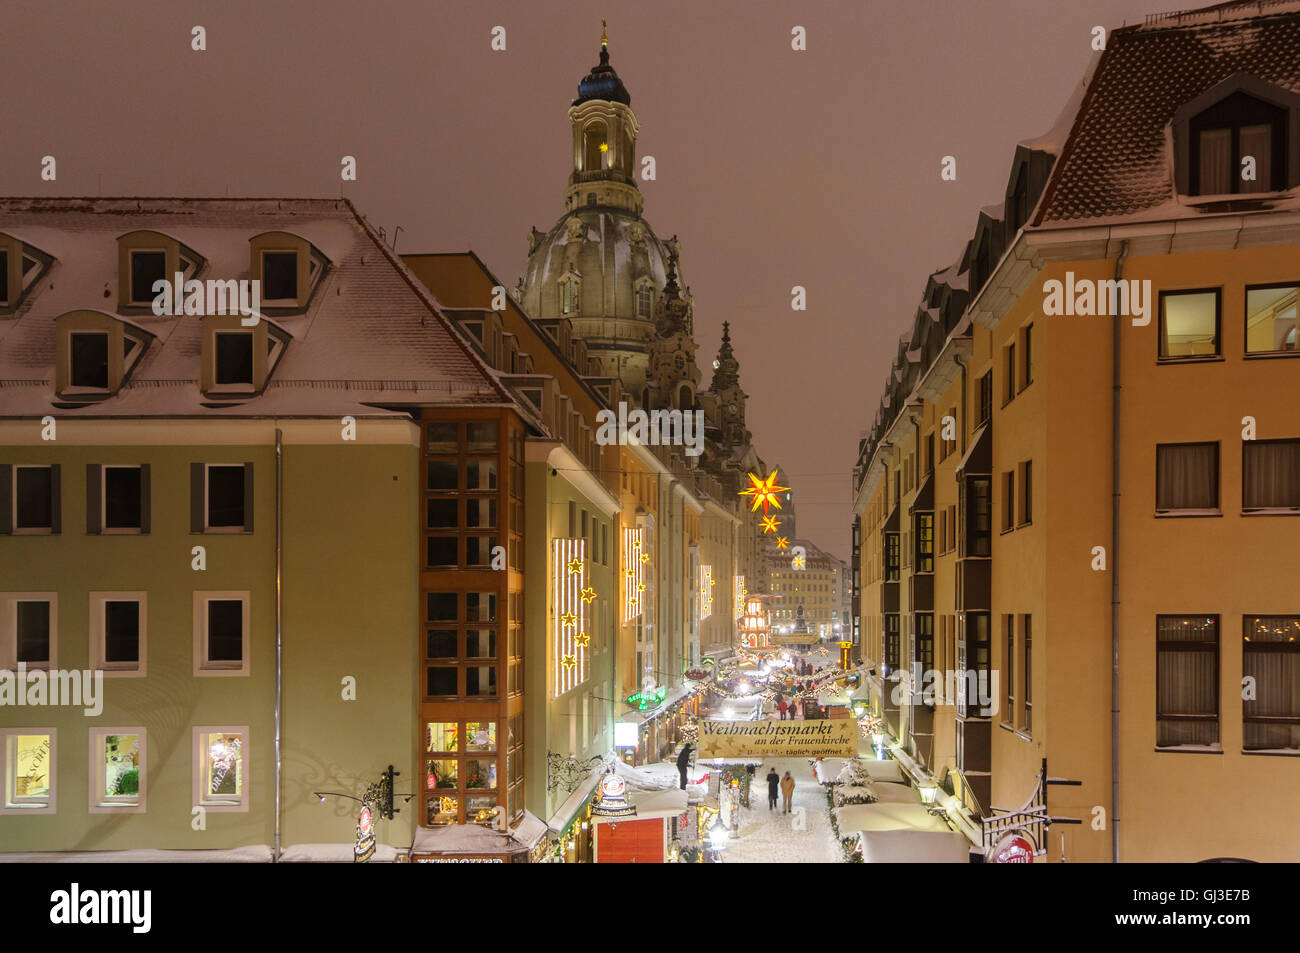 frauenkirche dresden winter stockfotos frauenkirche dresden winter bilder alamy. Black Bedroom Furniture Sets. Home Design Ideas